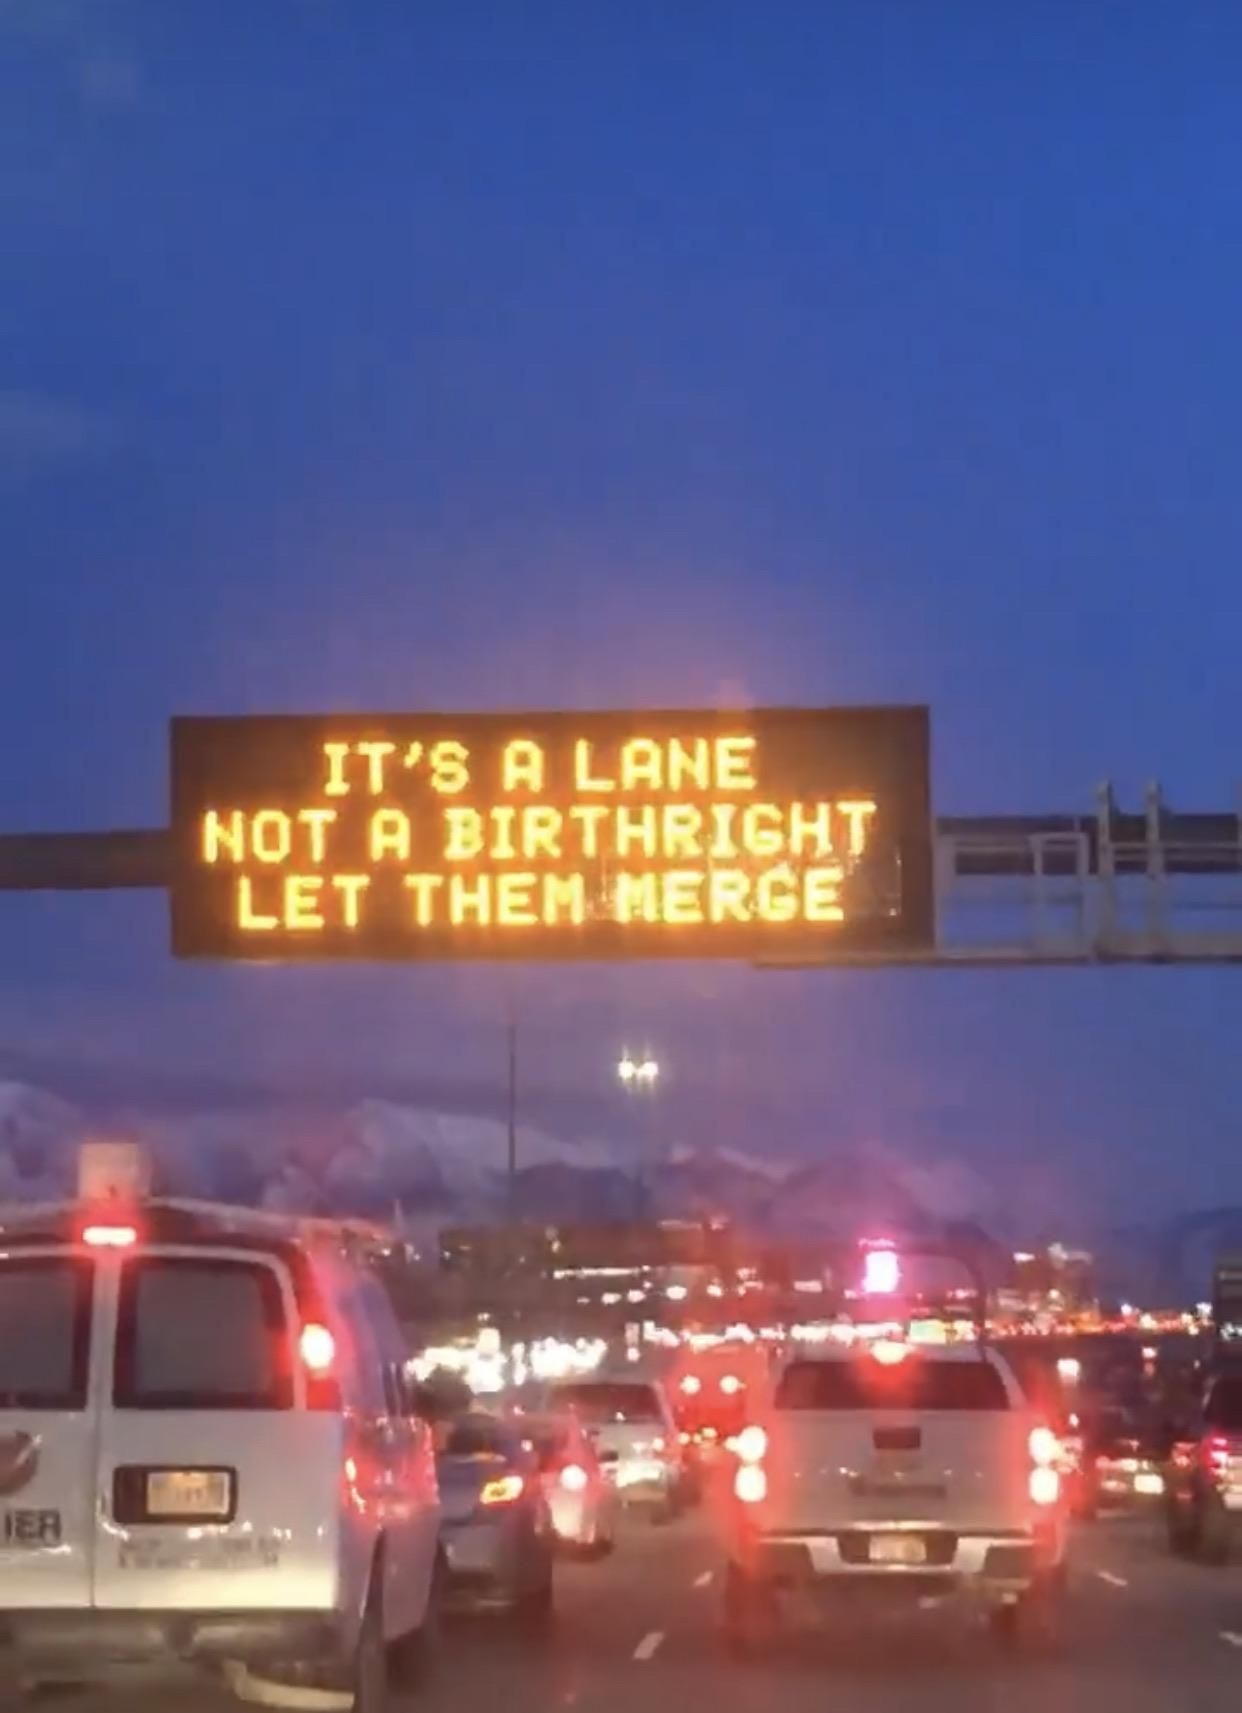 UTAH has its issues, but it's traffic signs are top notch